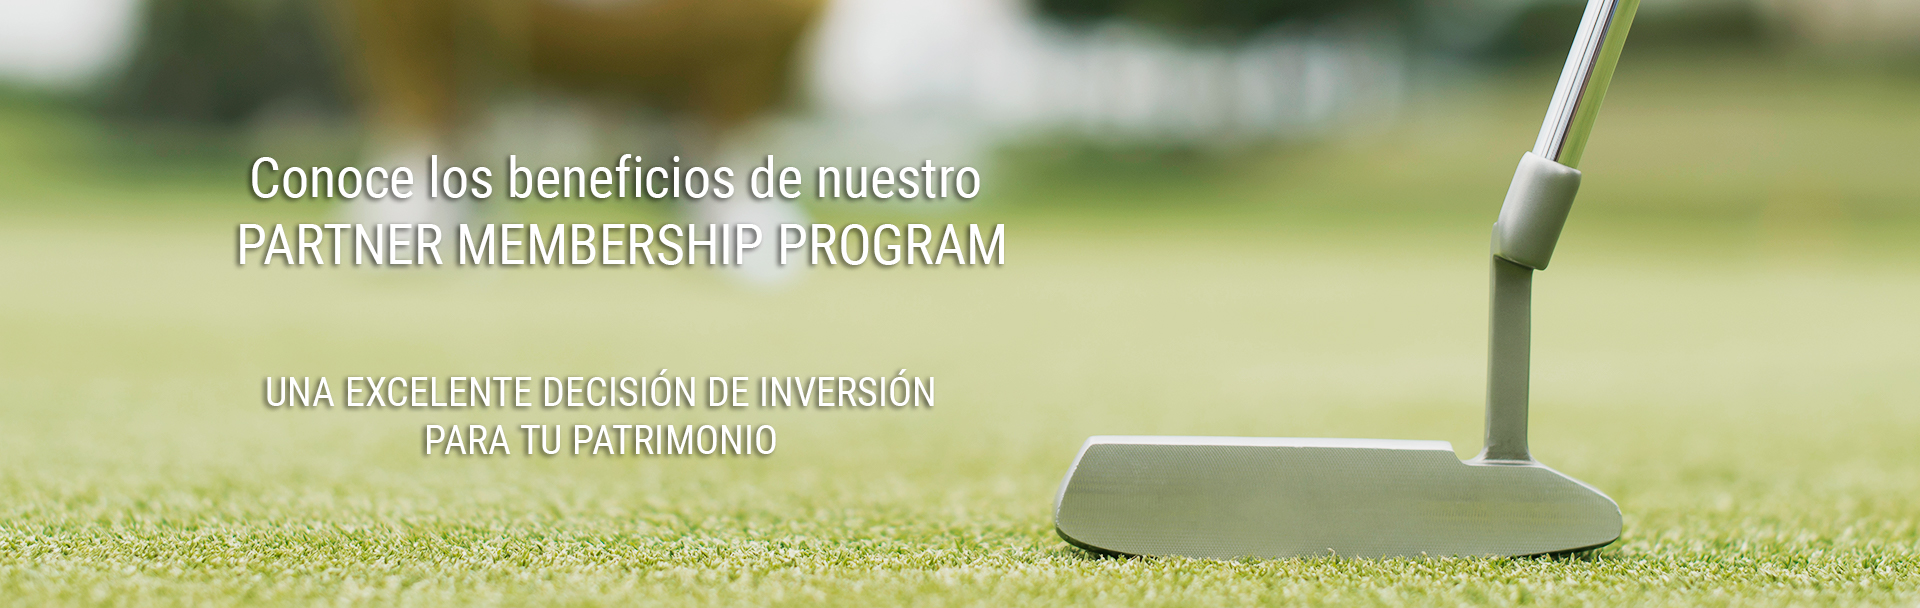 Programa exclusivo de membresías para socios de La Vista Country Club